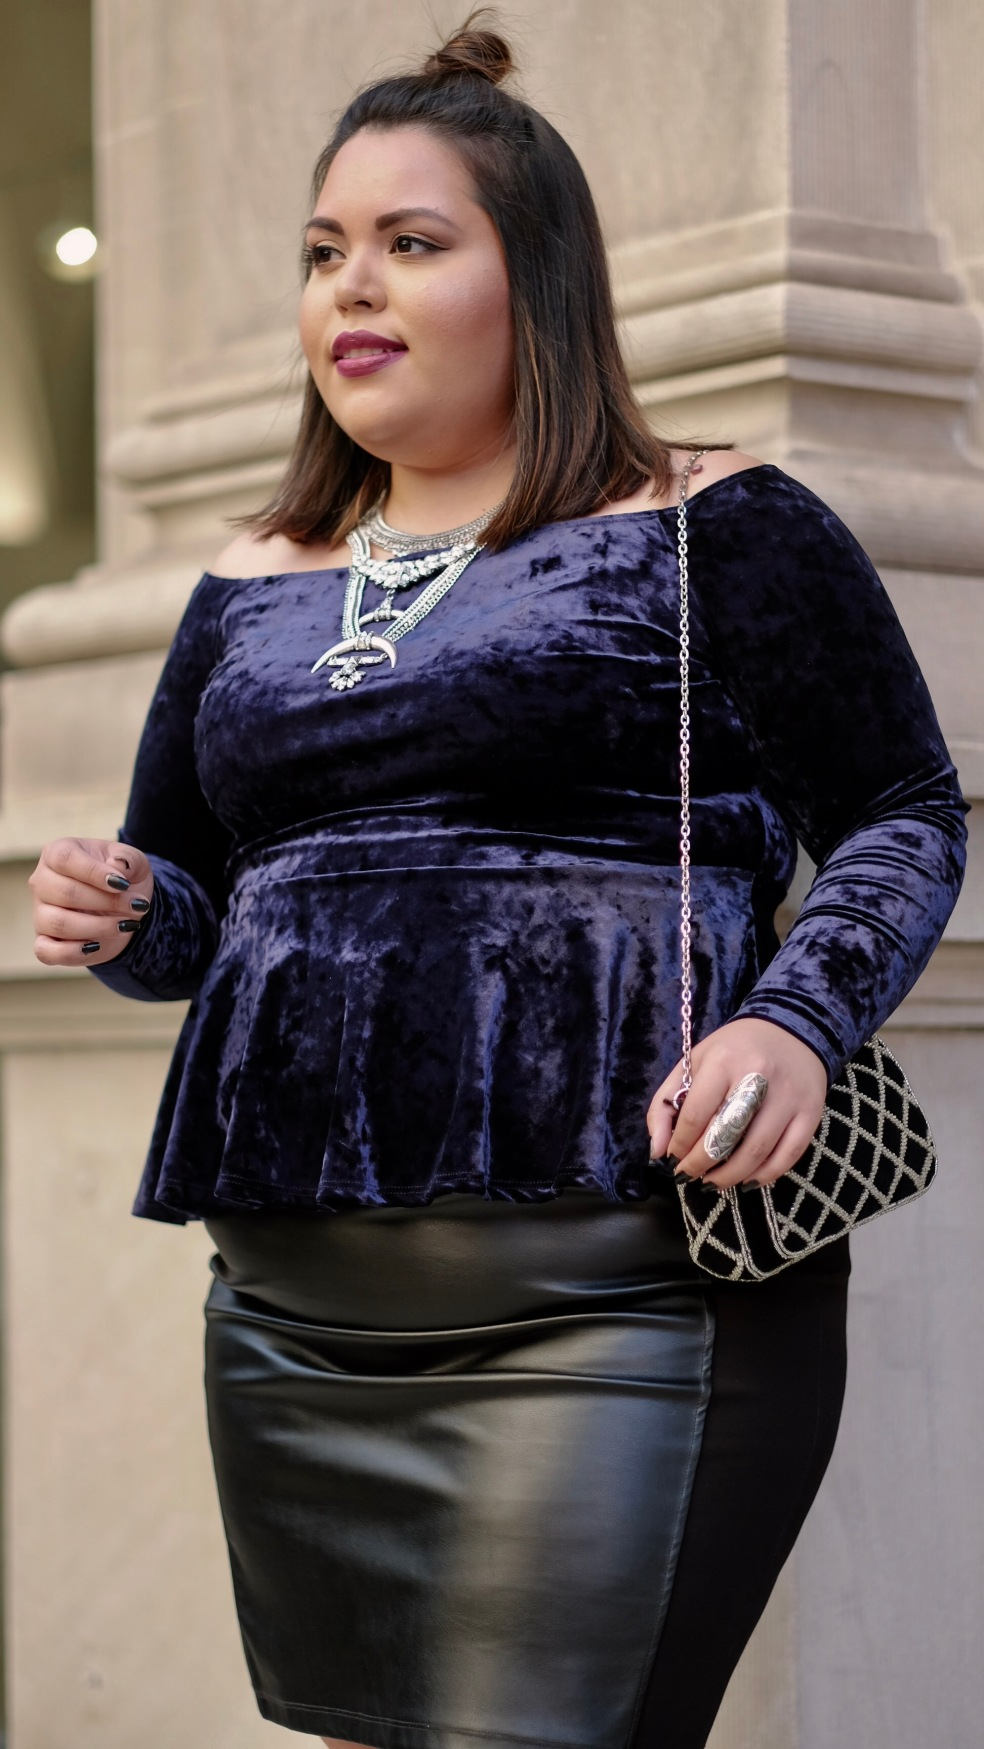 Plus Size Crushed Blue Velvet Off The Shoulder Peplum Top and Calvin Klein Faux Leather Black Pencil Skirt